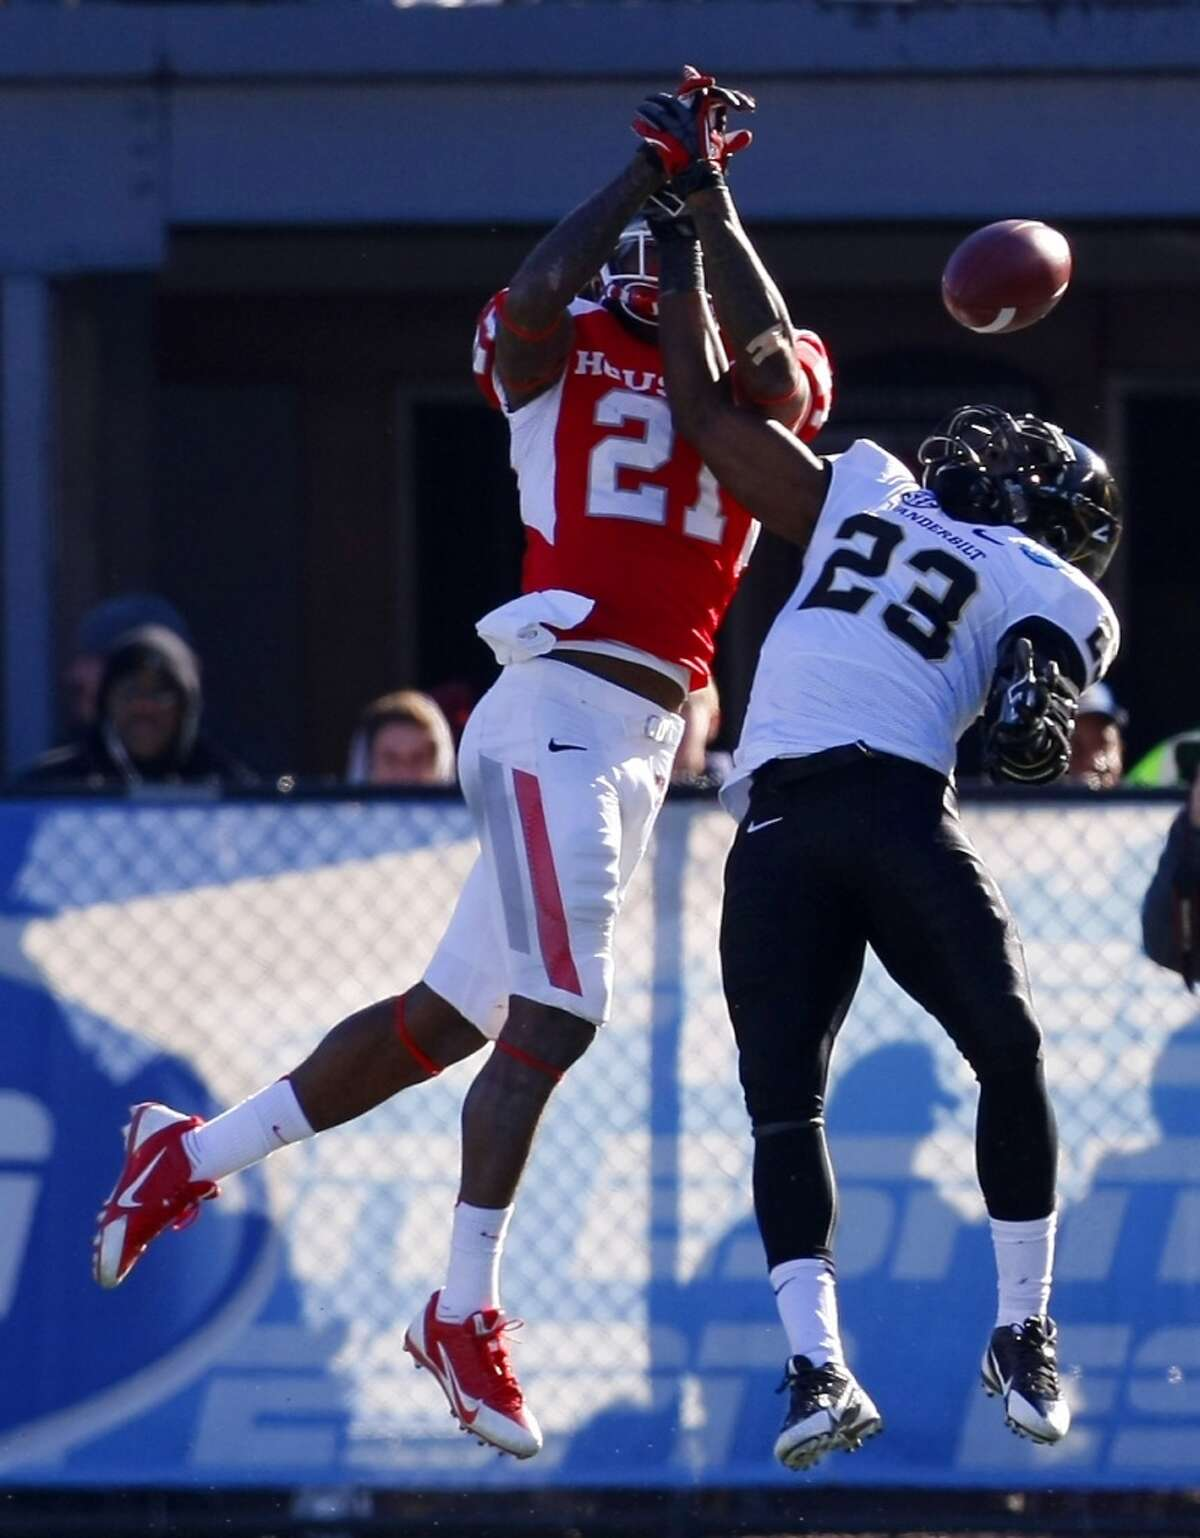 A pass intended for UH receiver Markeith Ambles is deflected by a Vanderbilt defender.